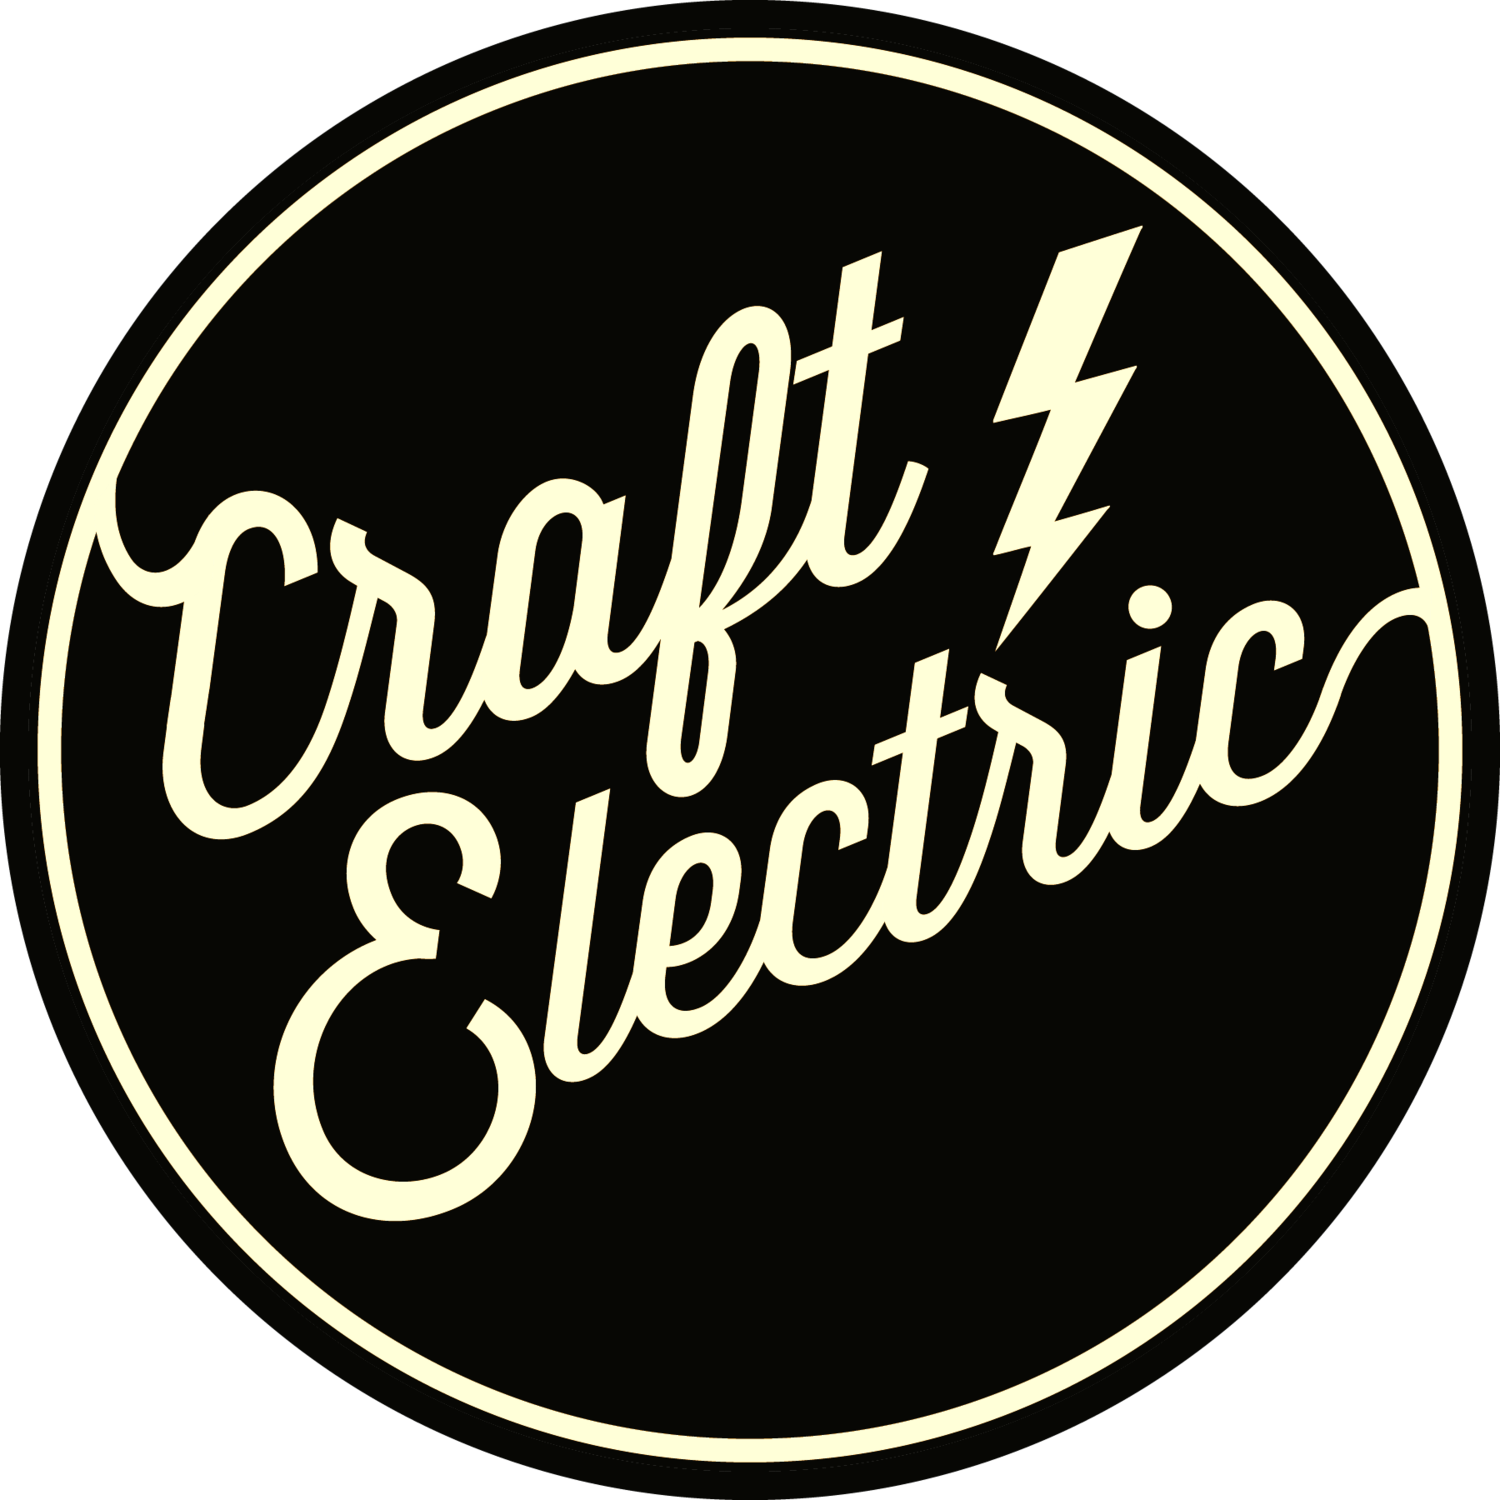 CRAFT ELECTRIC CO., INC.